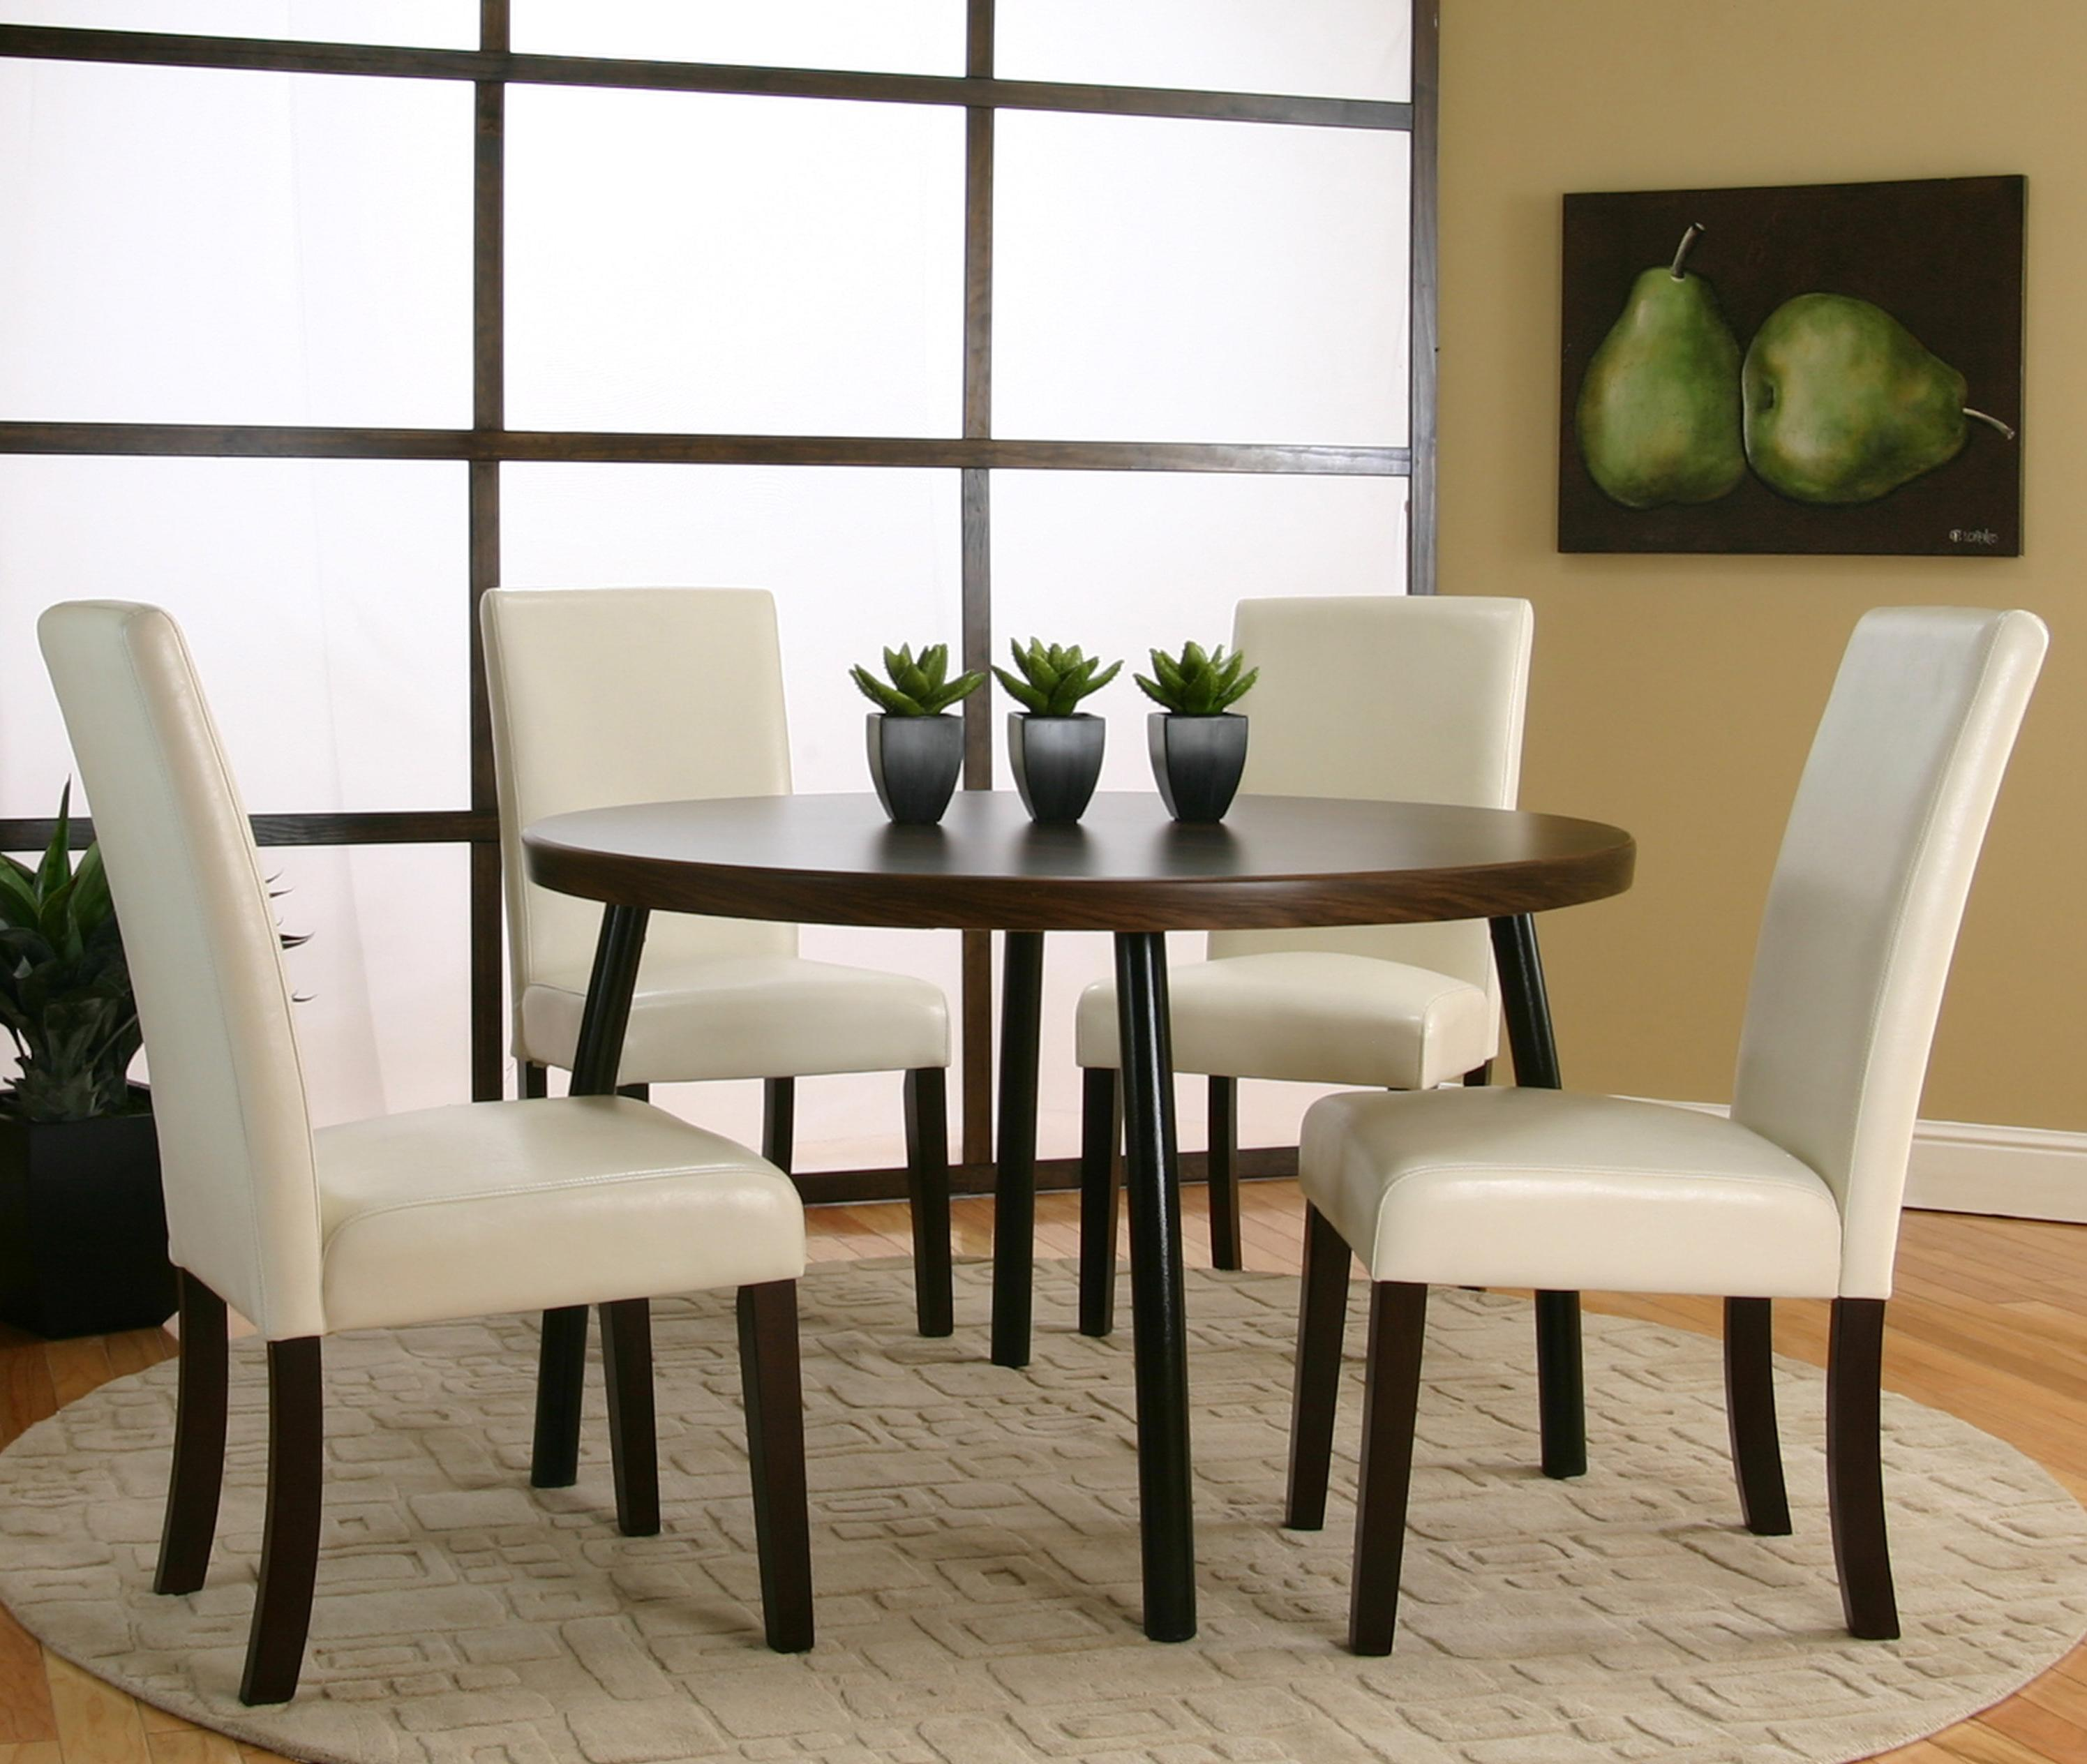 Cramco Inc Contemporary Design Kemper Upholstered  : products2Fcramco2Cinc2Fcolor2Fkemper25310 13 b2 from www.darvin.com size 2991 x 2528 jpeg 444kB